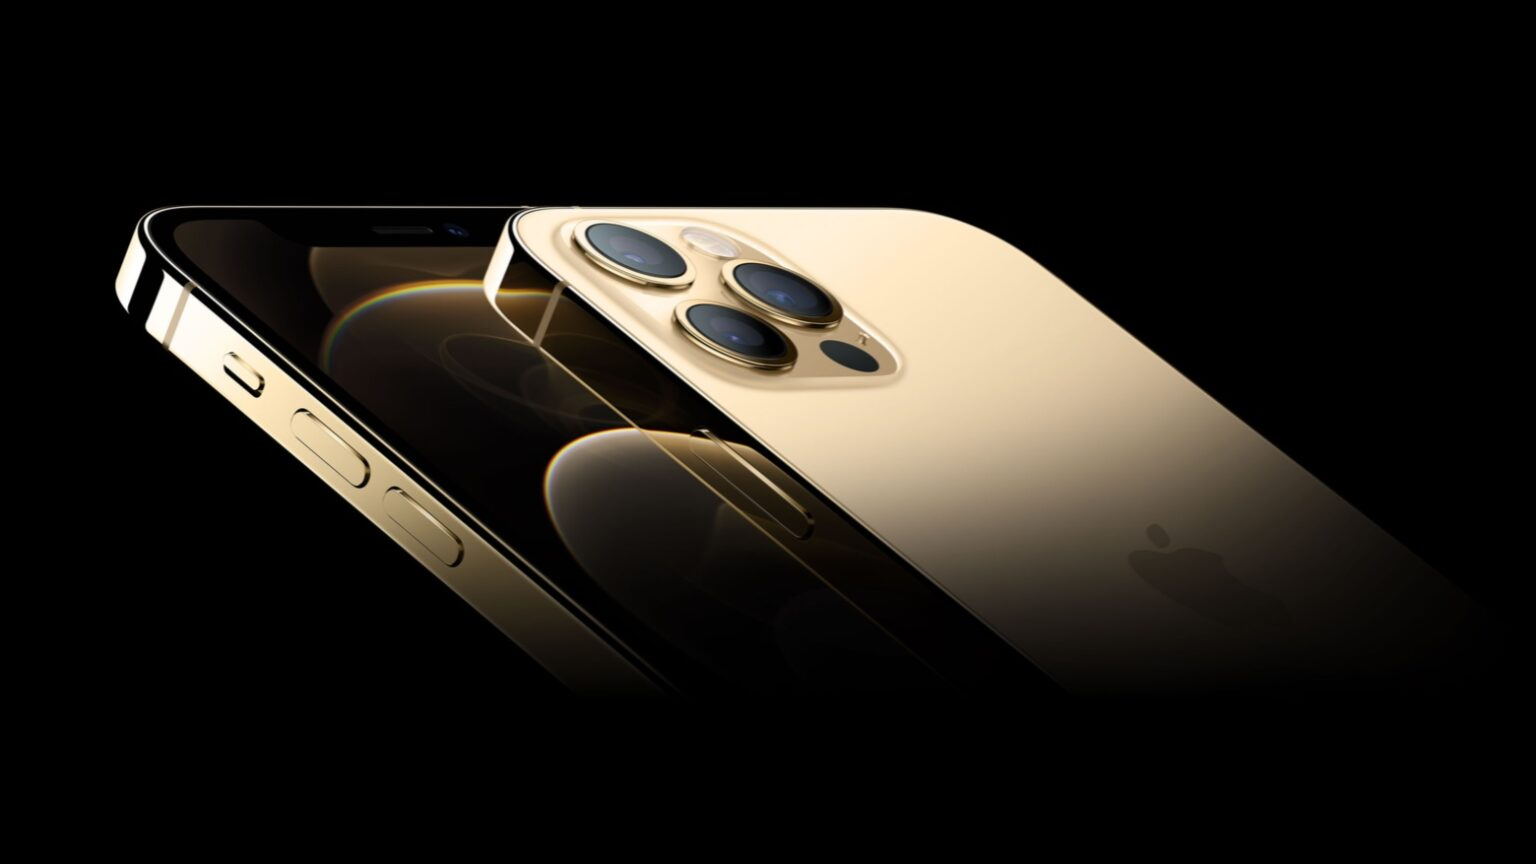 Apple ProRAW is one of benefits of the iPhone 12 Pro series.